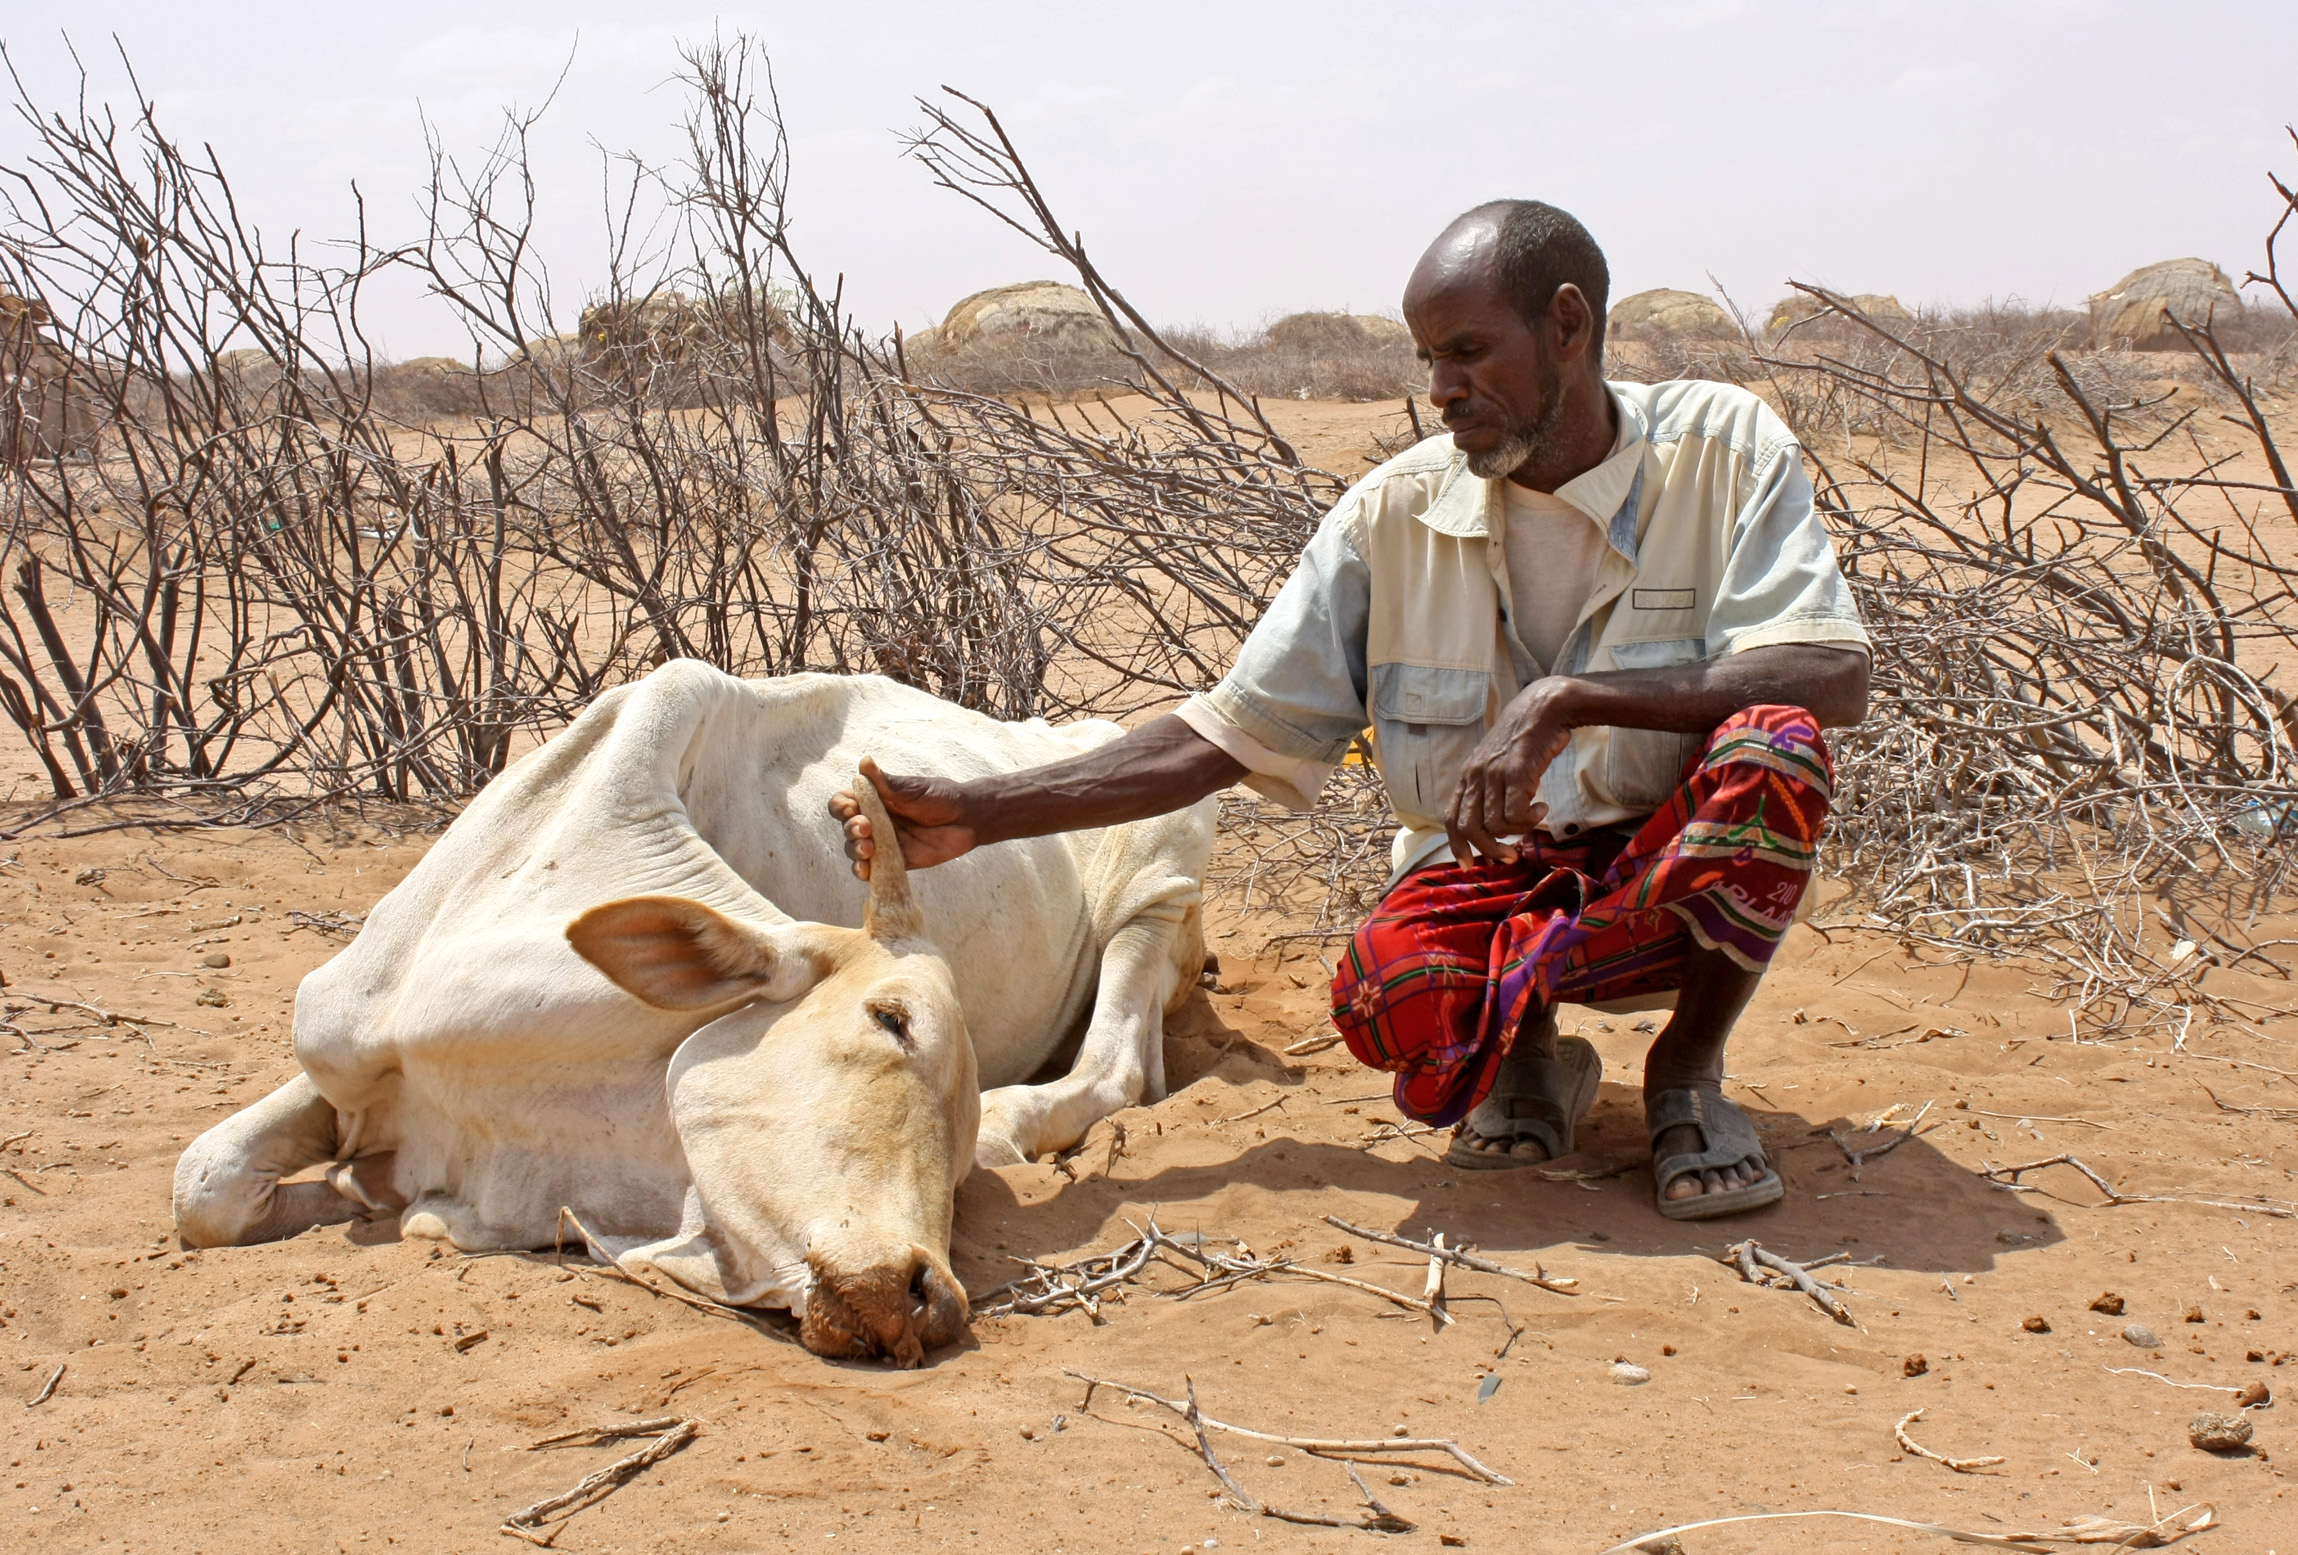 Abdille Muhamed with his dead cow in Garse Koftu village, 120km from Wajir in northeastern